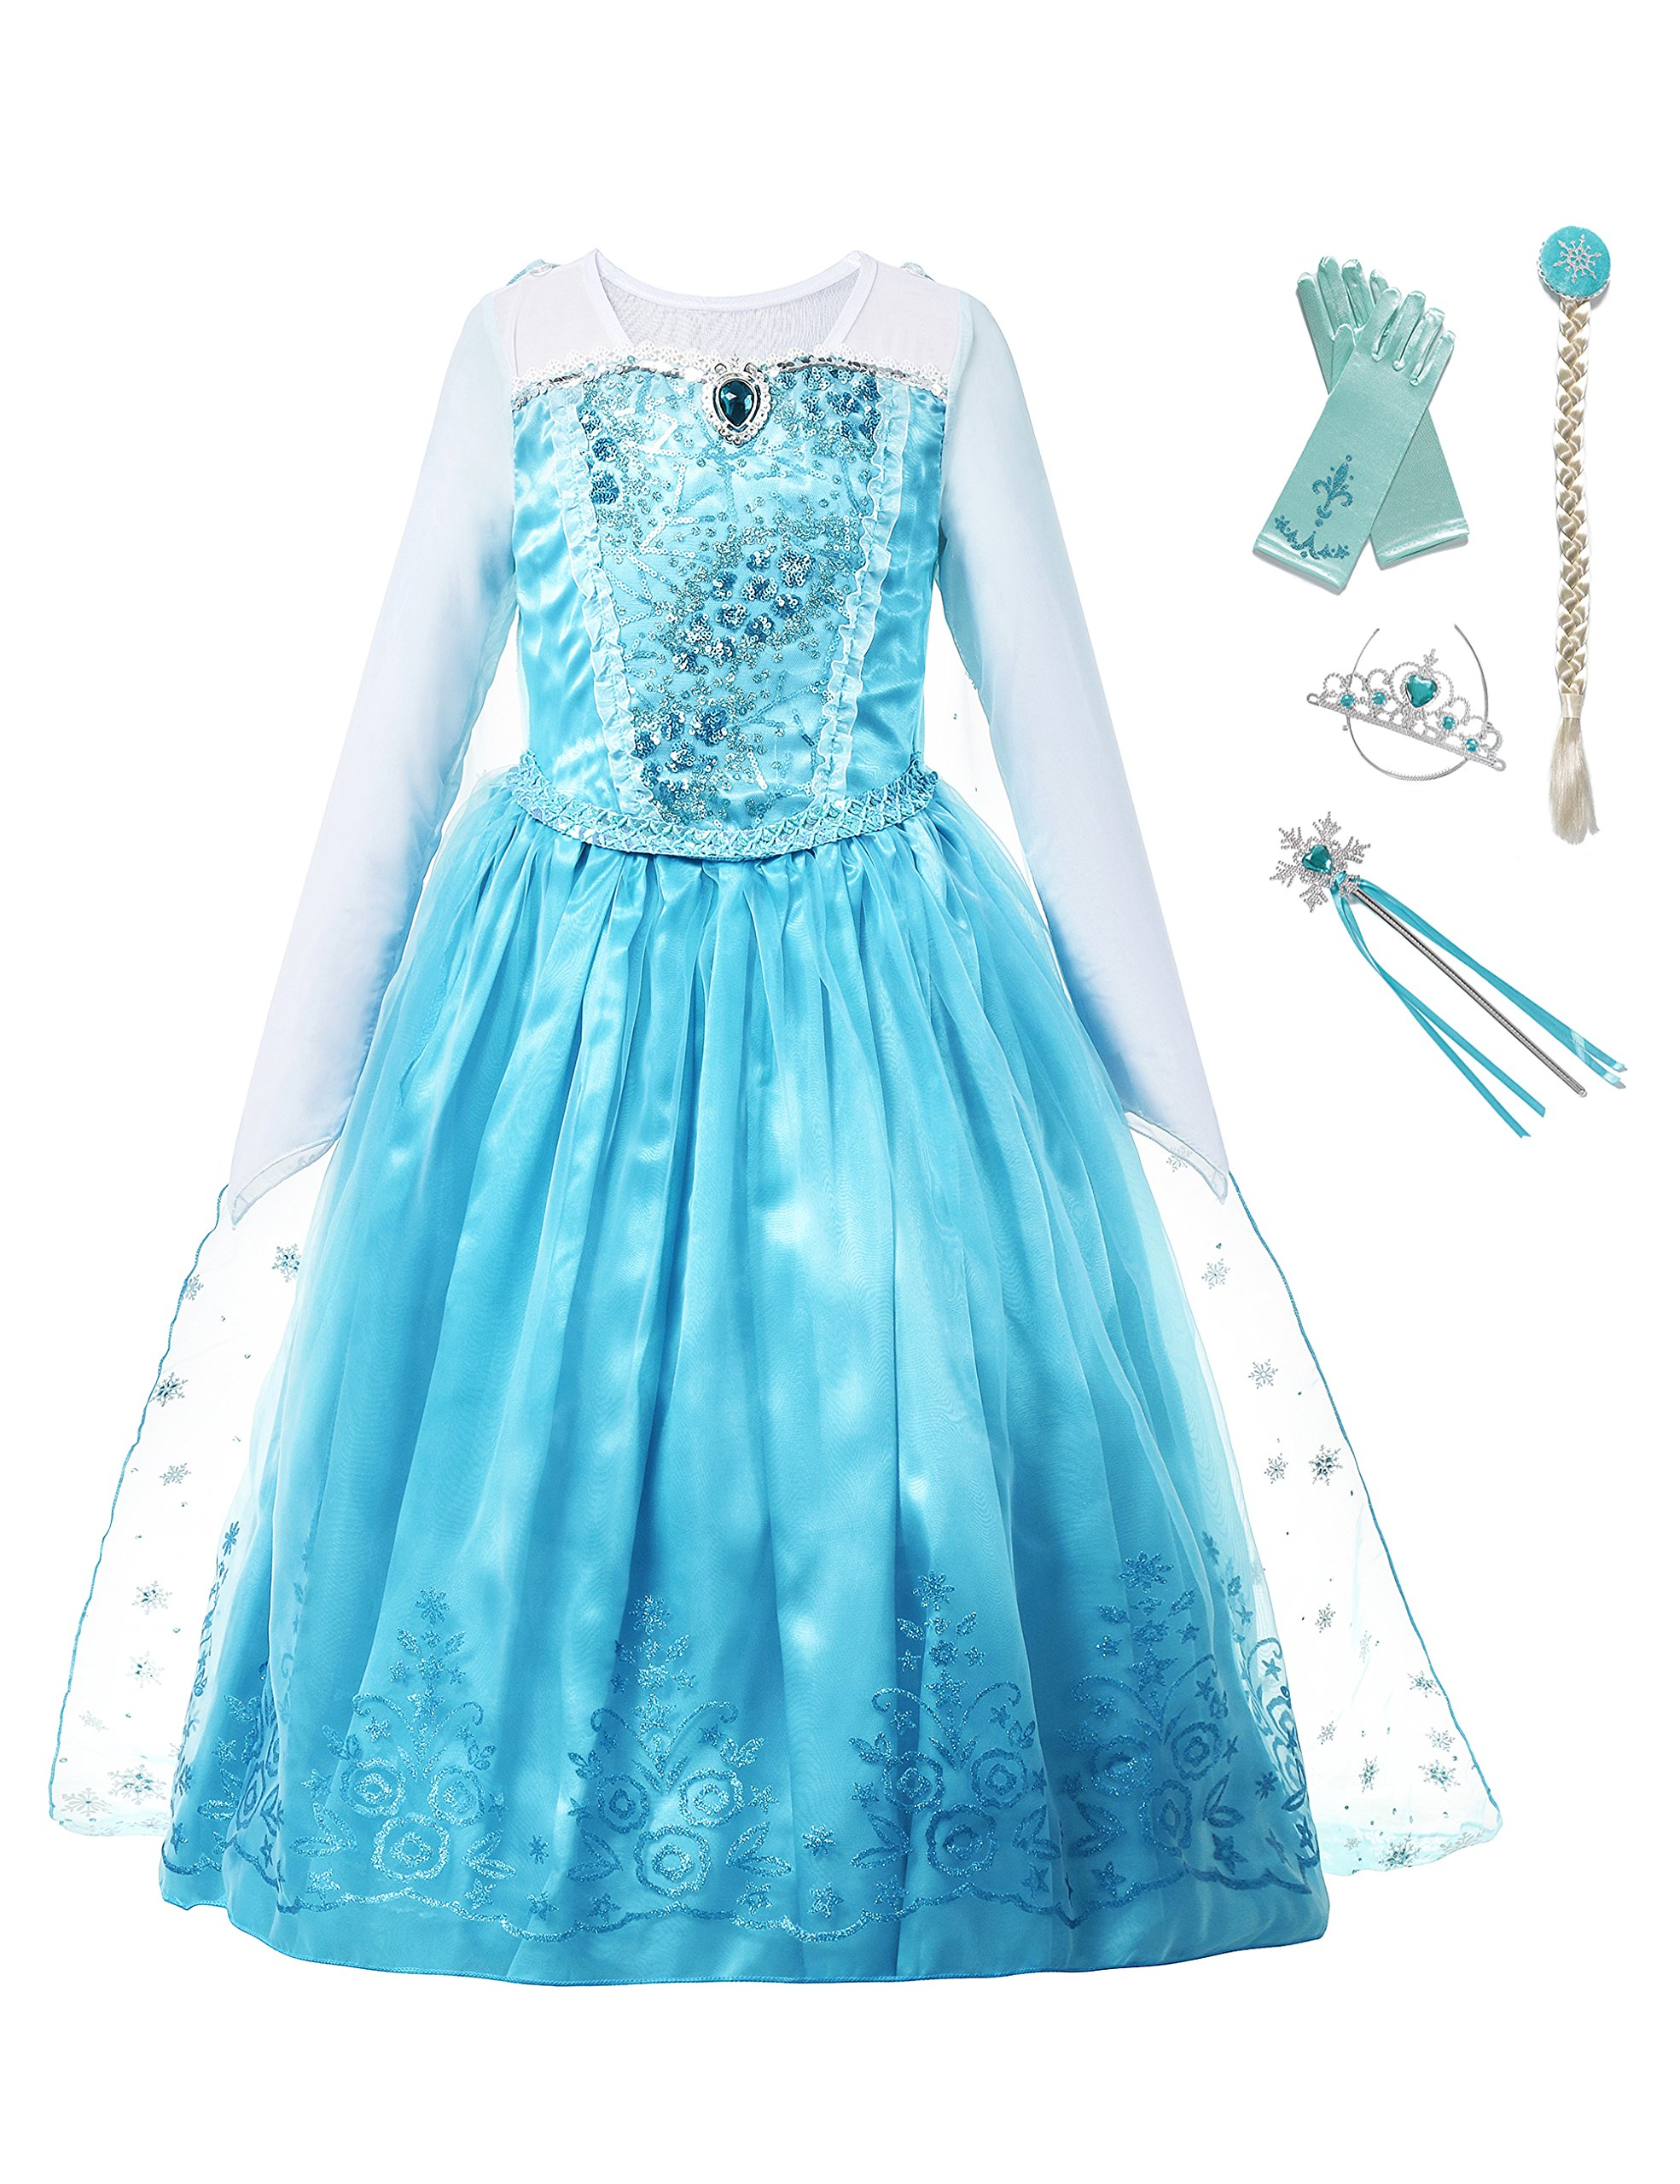 aibeiboutique Girls Princess Costume Ice Snow Queen Sequin Cosplay Dress up (2-3 Years)